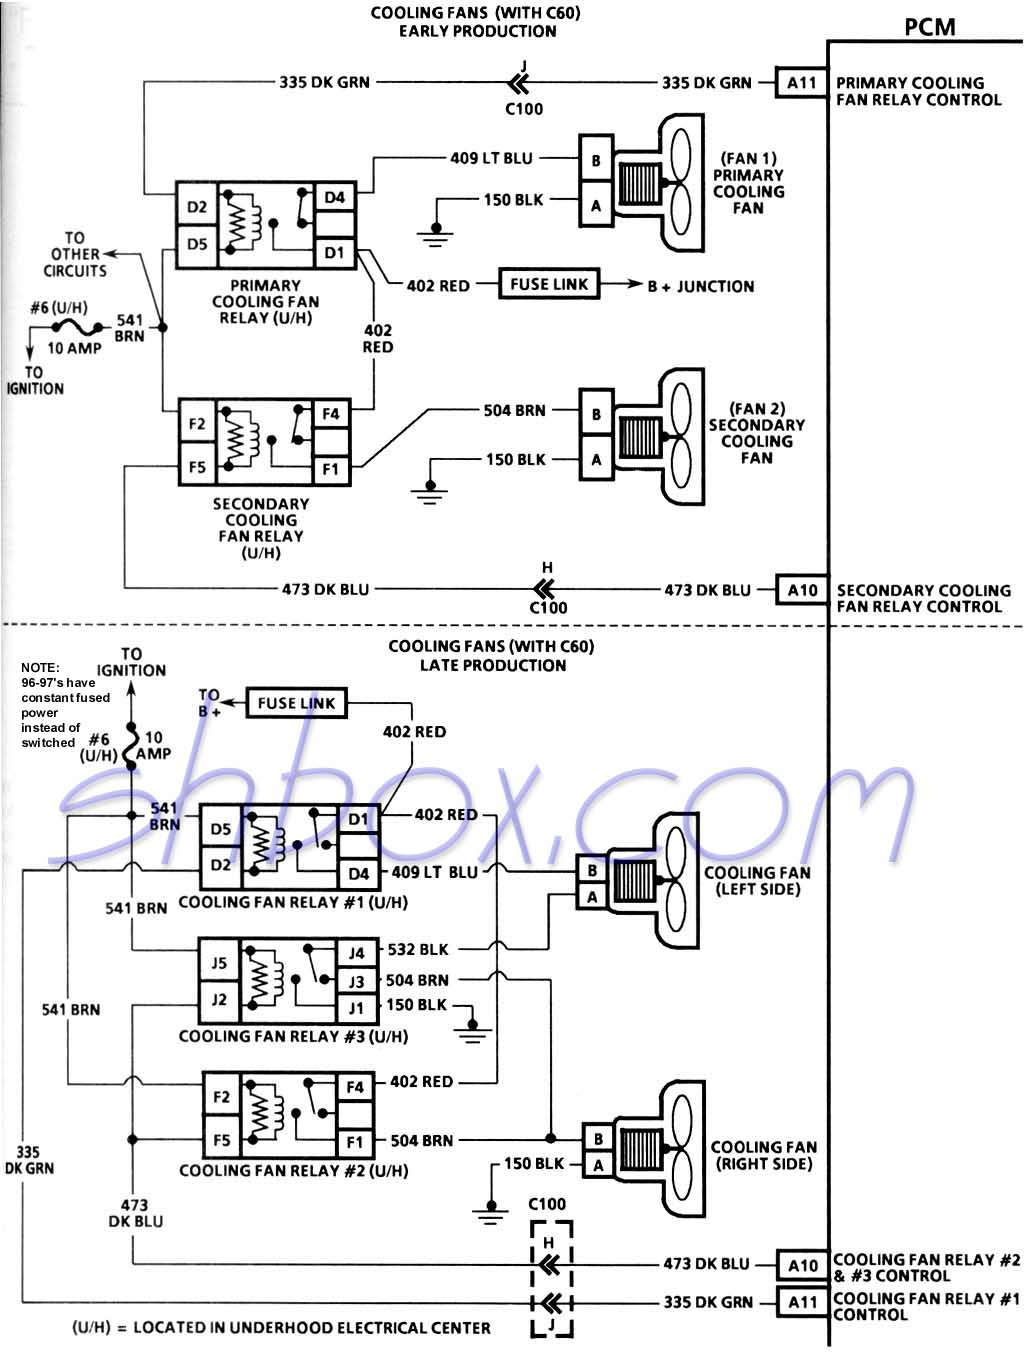 Radiator Fan Not Working 2580655 likewise Cadillac Sts 4 6i 2009 Specs And Images besides Chevy 3 8 Coolant Elbow 3800 Engine Diagram as well 261271130555 also 99 Cabrio Fuel Pump Relay Location. on 1994 pontiac grand am engine diagram